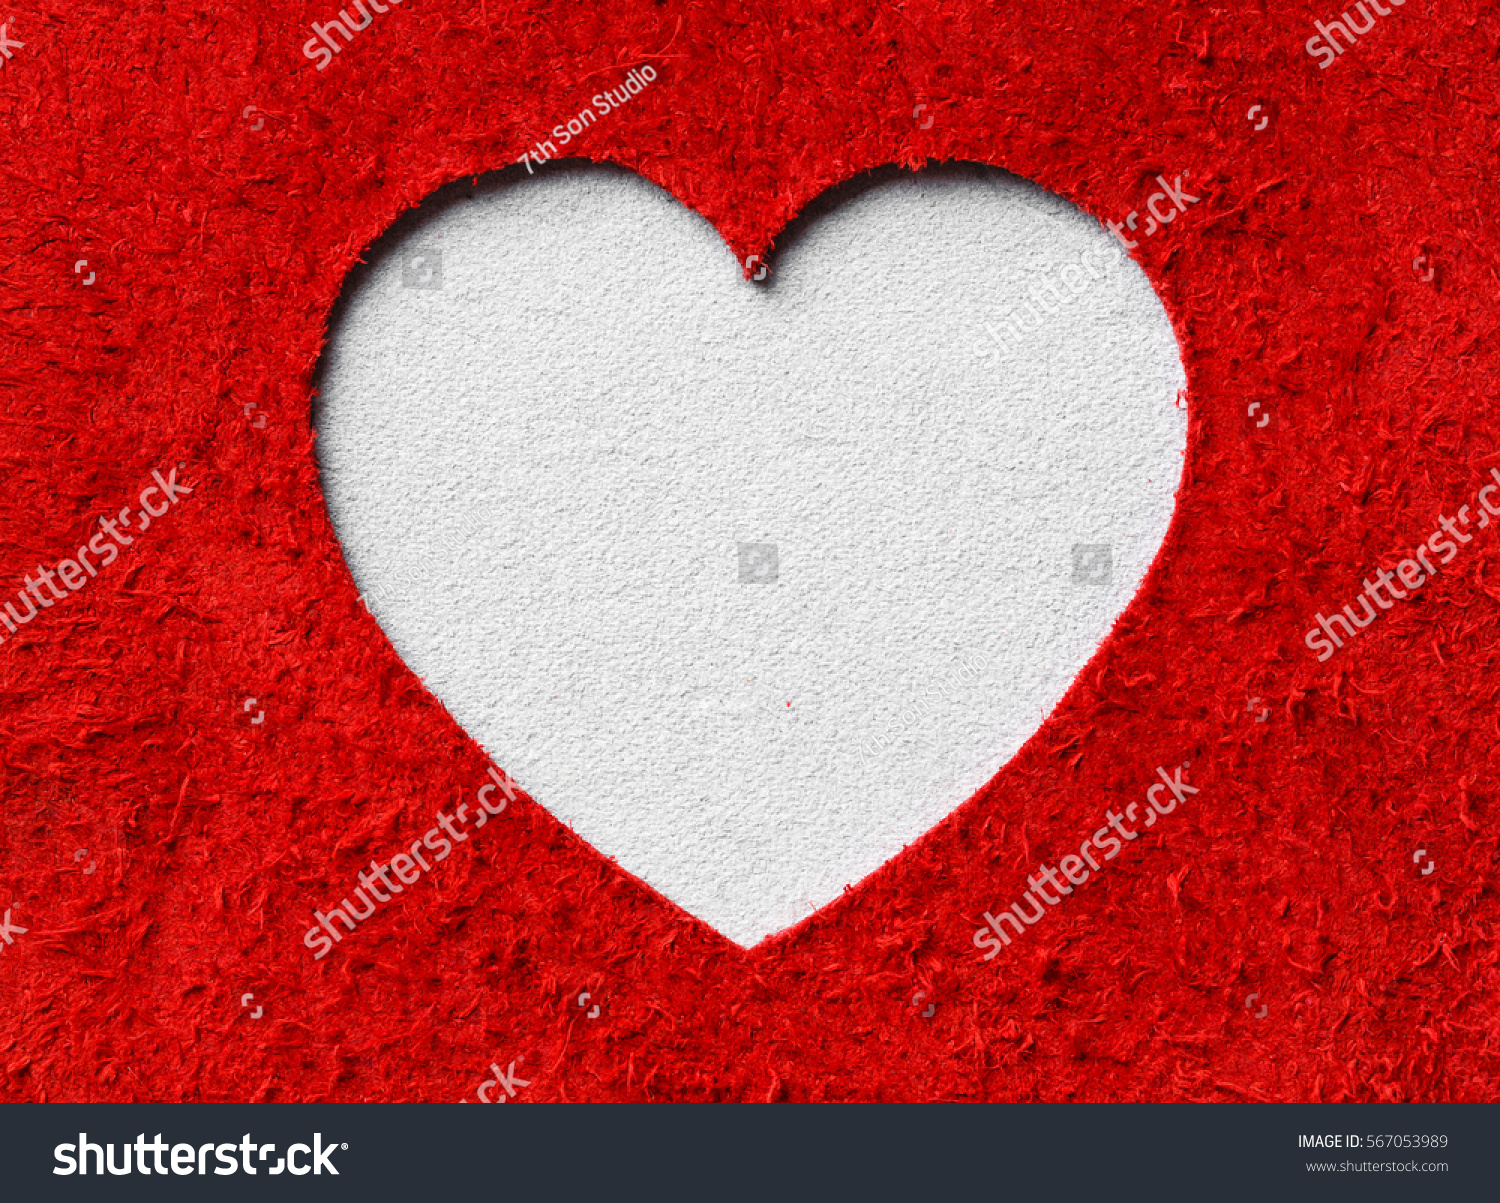 bcfc392f443 Heart Shape Red White Color Genuine Stock Photo (Edit Now) 567053989 ...